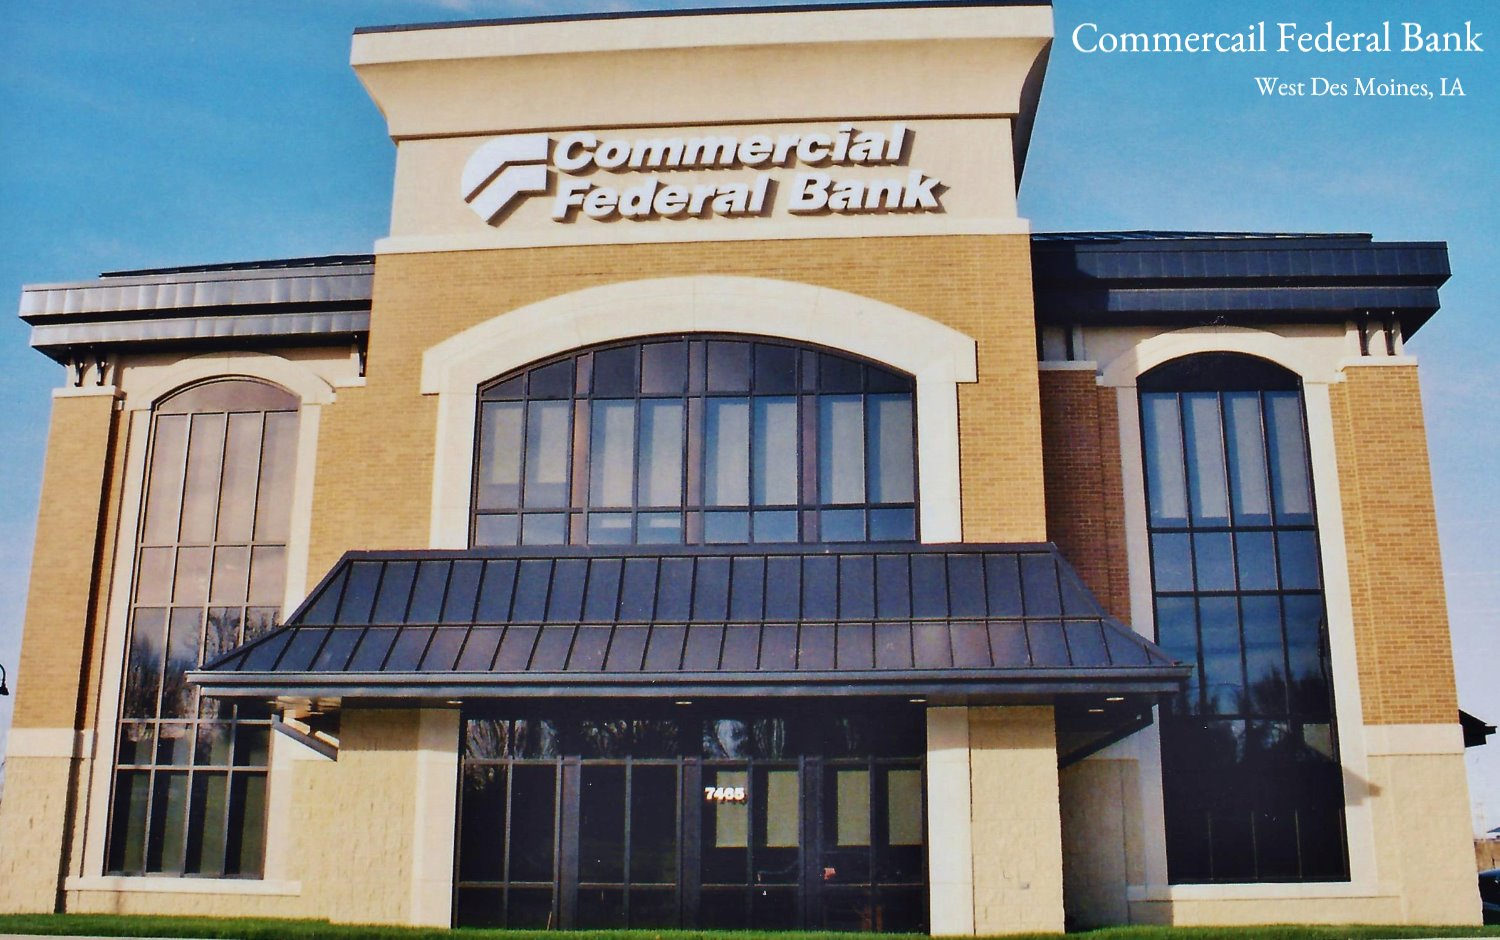 Commercial Federal Bank 2015-5-13-15:32:48